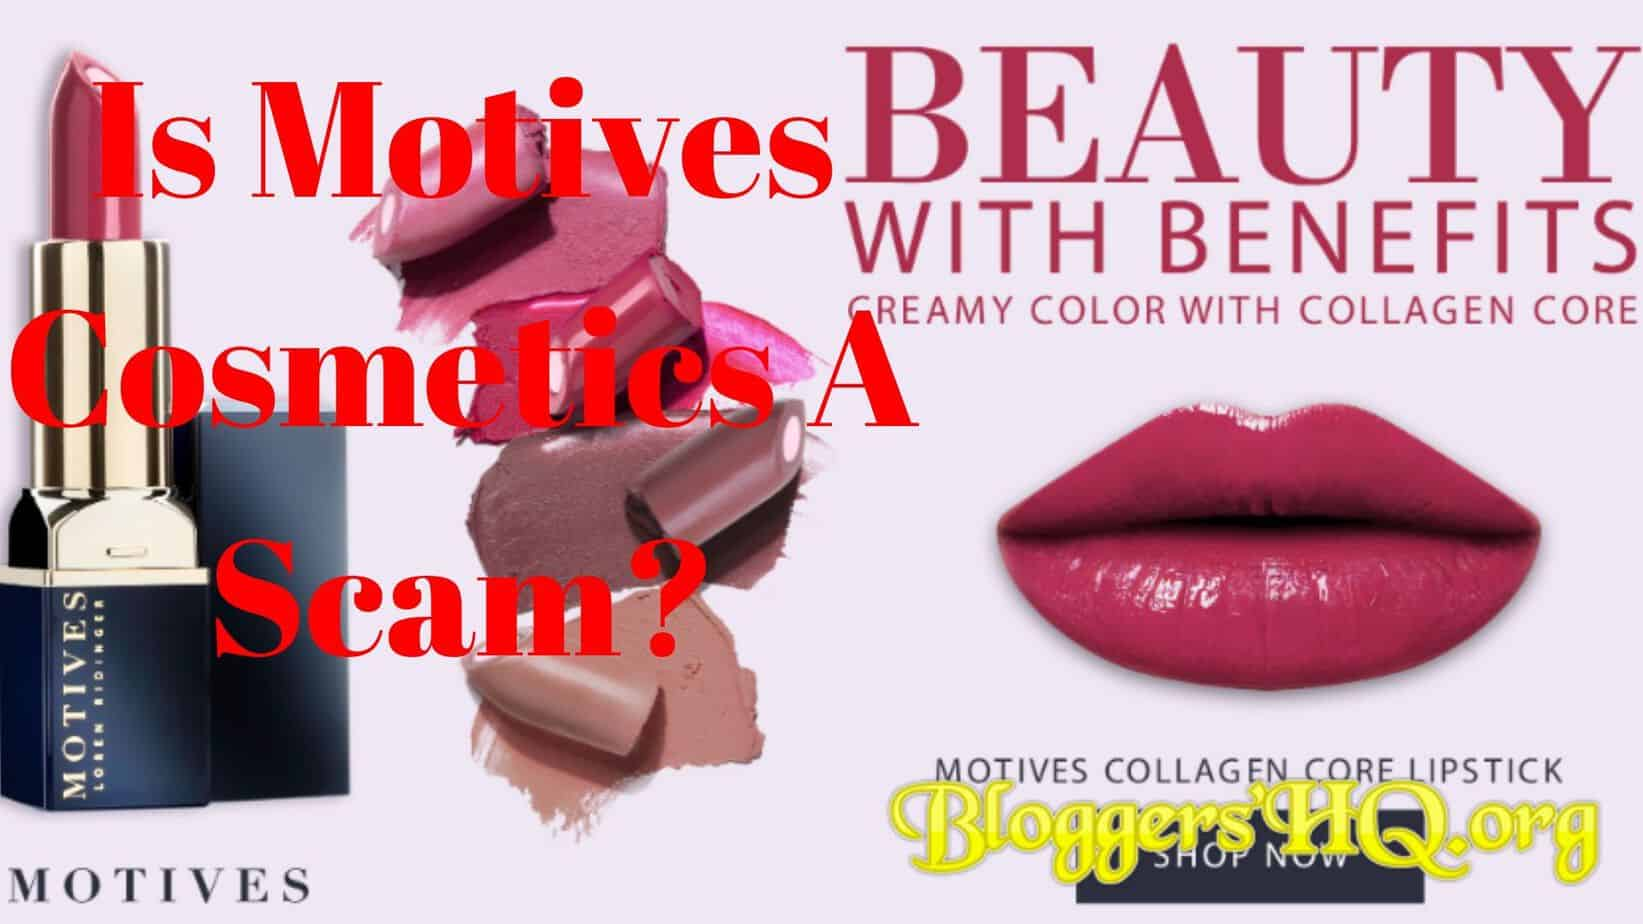 Is Motives Cosmetics A Scam Or Beauty With Real Benefits